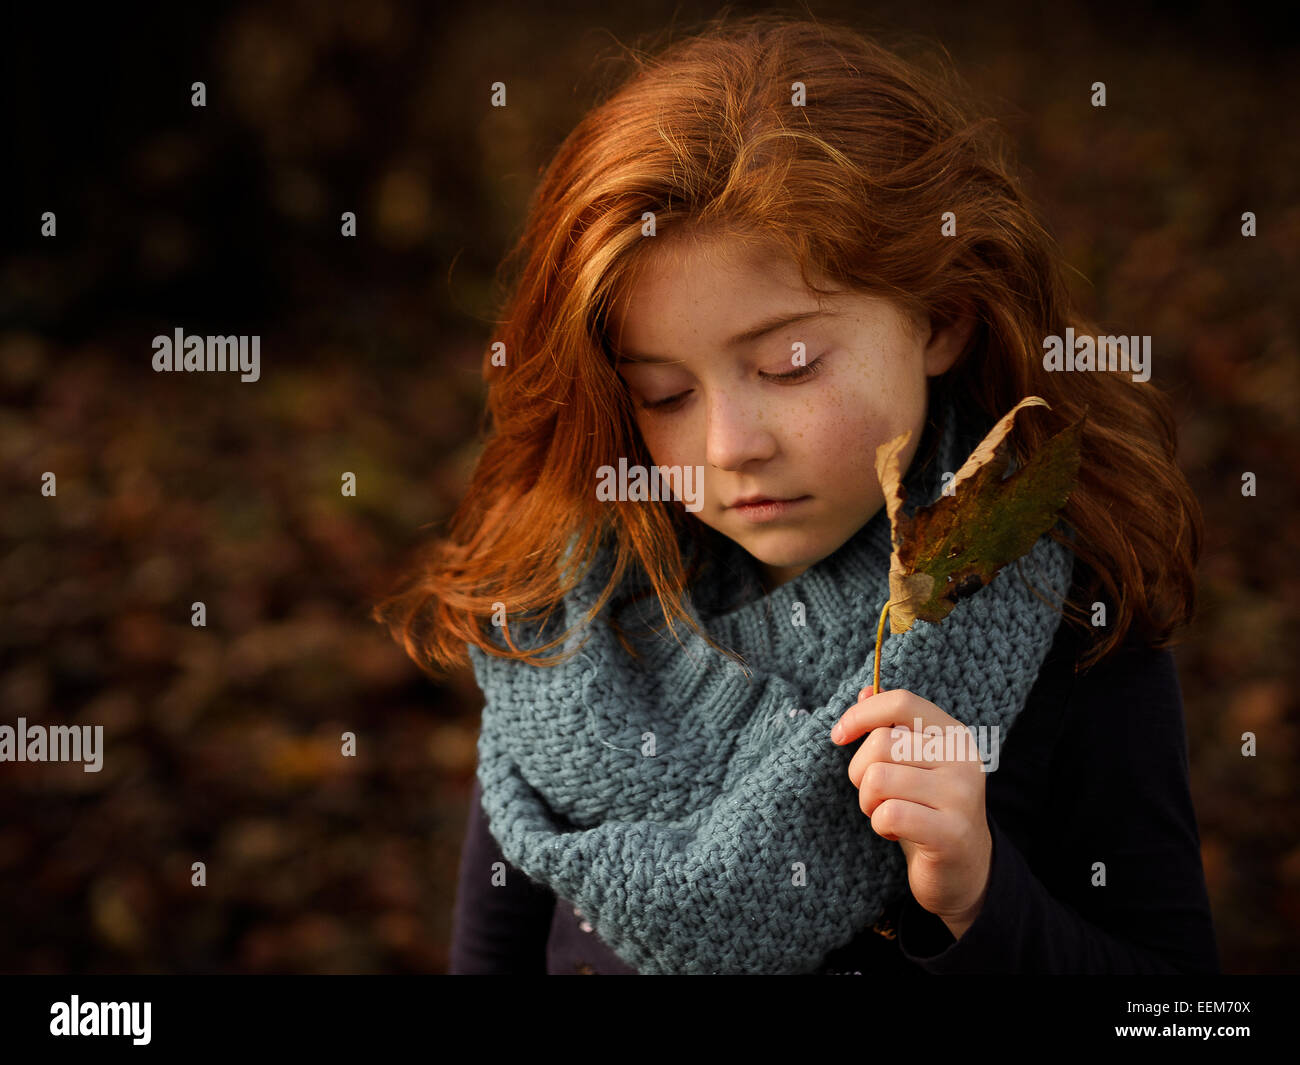 Red haired girl holding autumn leaf - Stock Image